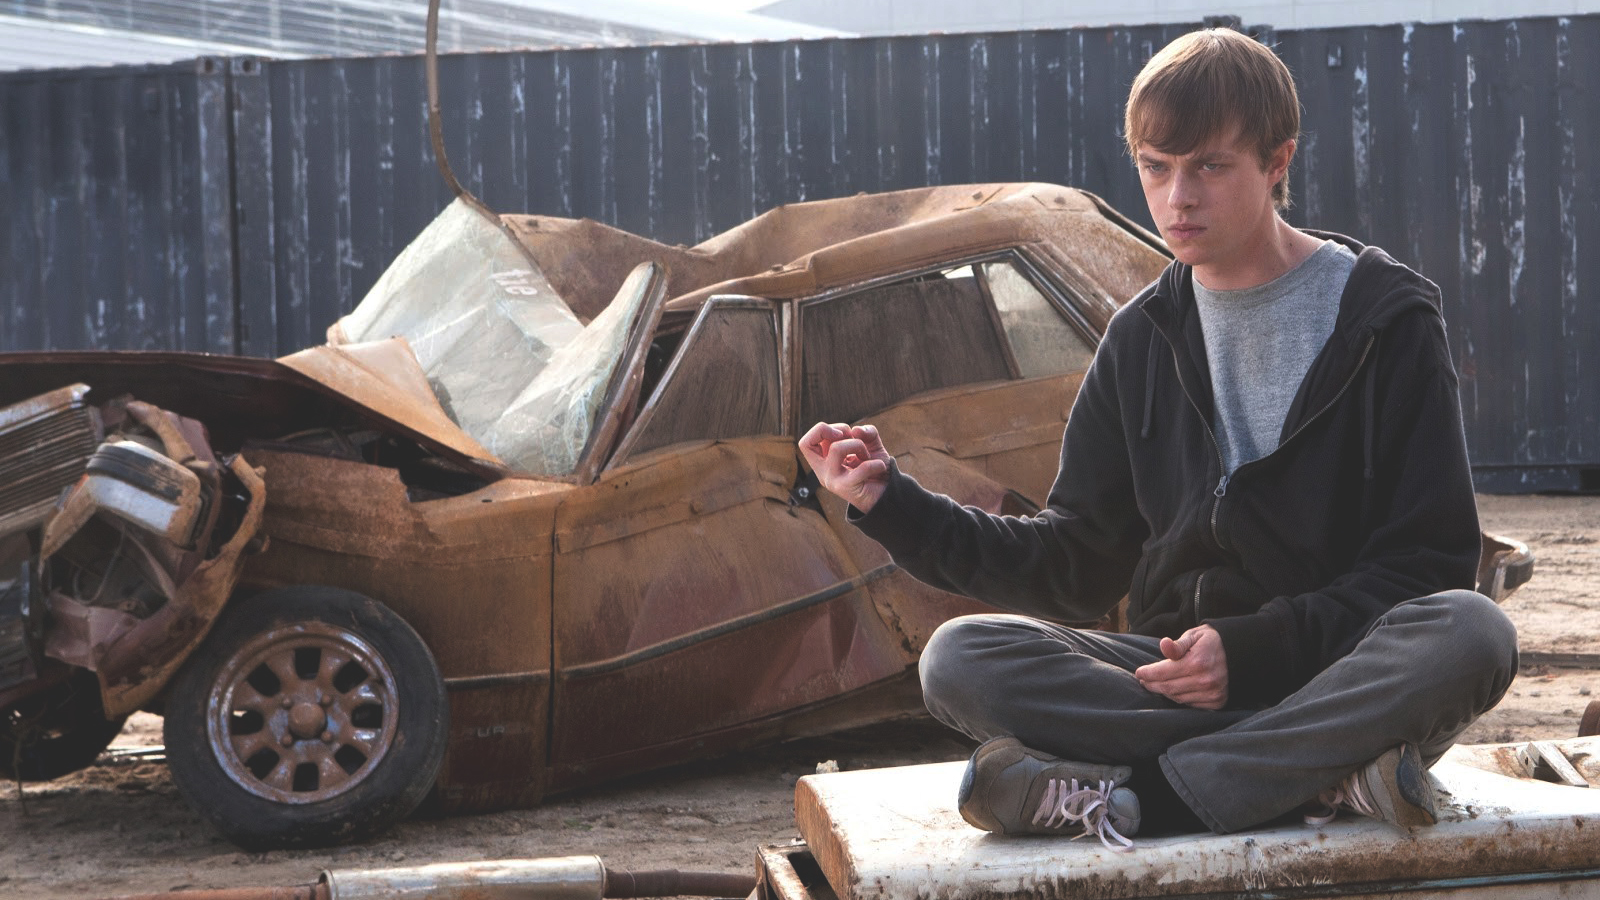 Chronicle is one of the best but most underrated Hollywood films of 2000s